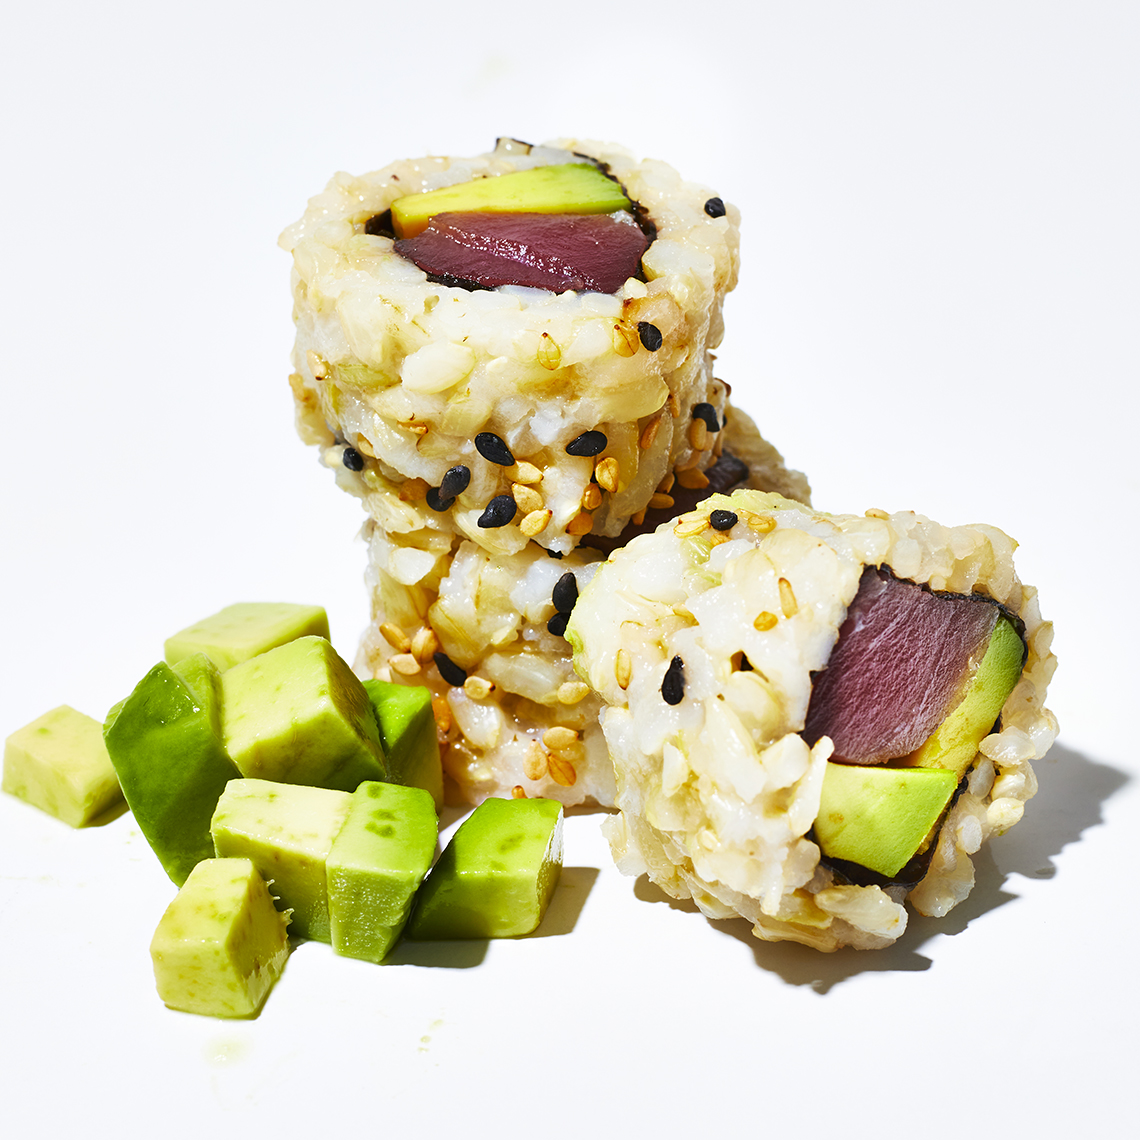 closeup of a few slices of a sushi tuna roll with brown rice and avocado